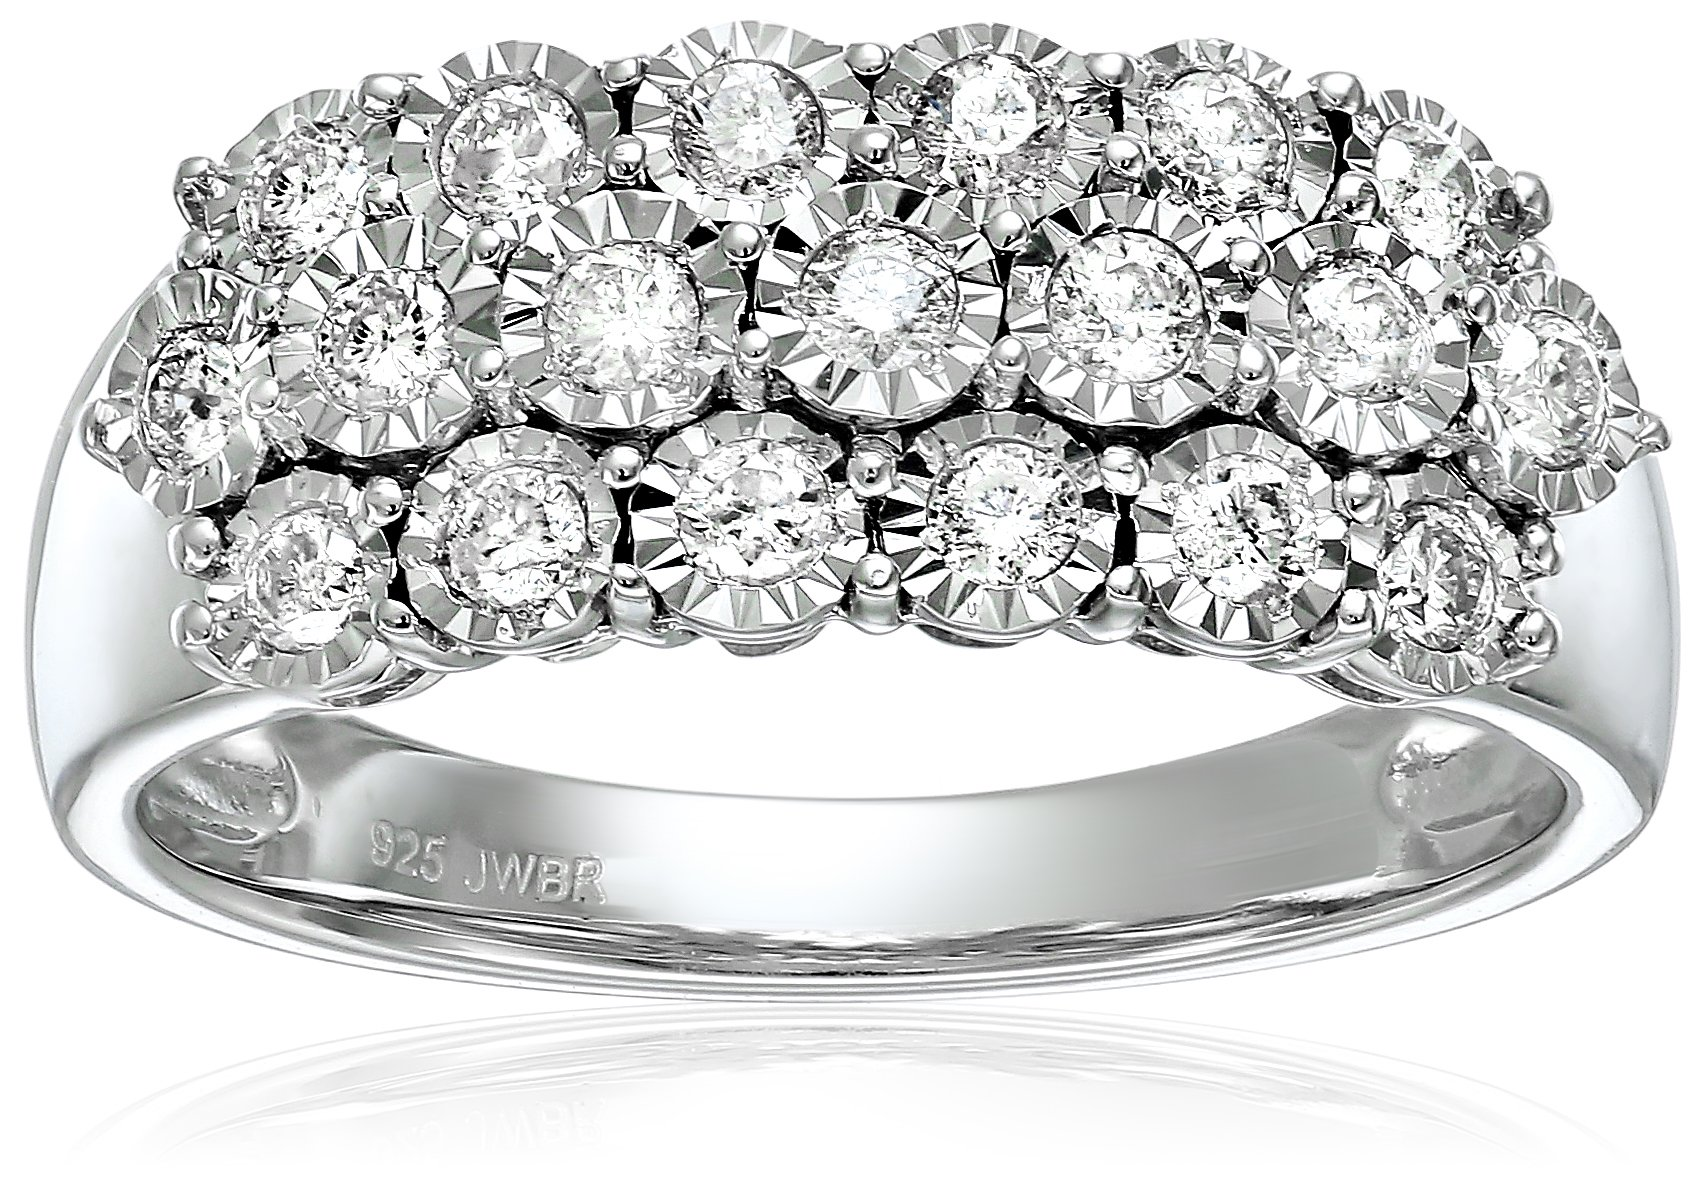 Sterling Silver with Miracle Plate Diamond Three row Anniversary Ring (1/2cttw), Size 7